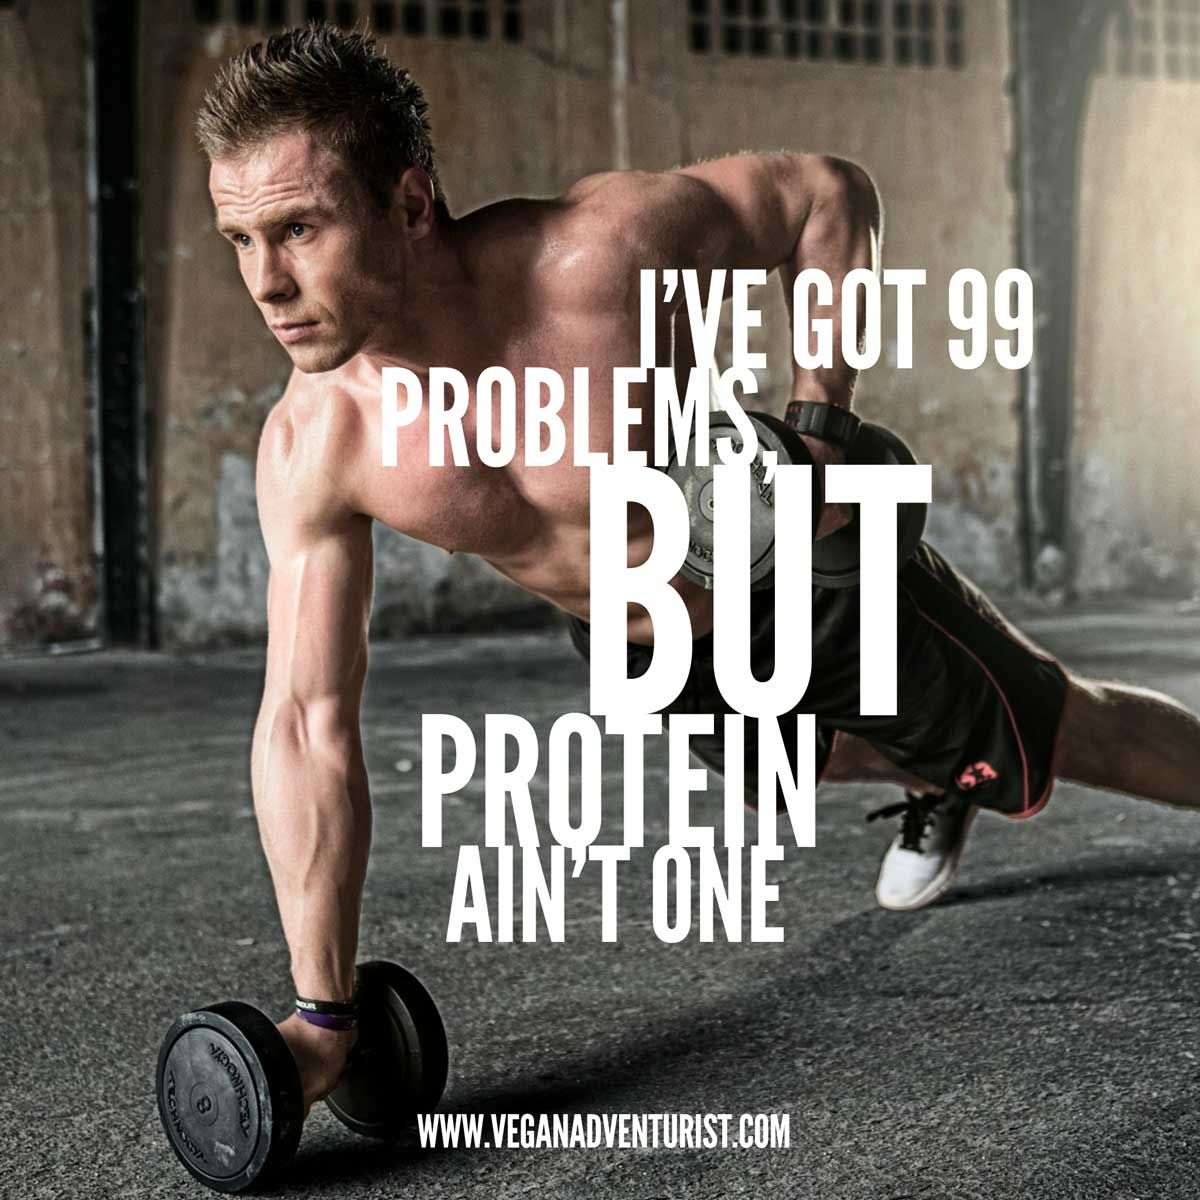 15 Awesome Vegan Workout Memes Workout Memes Workout Memes Funny Workout Humor